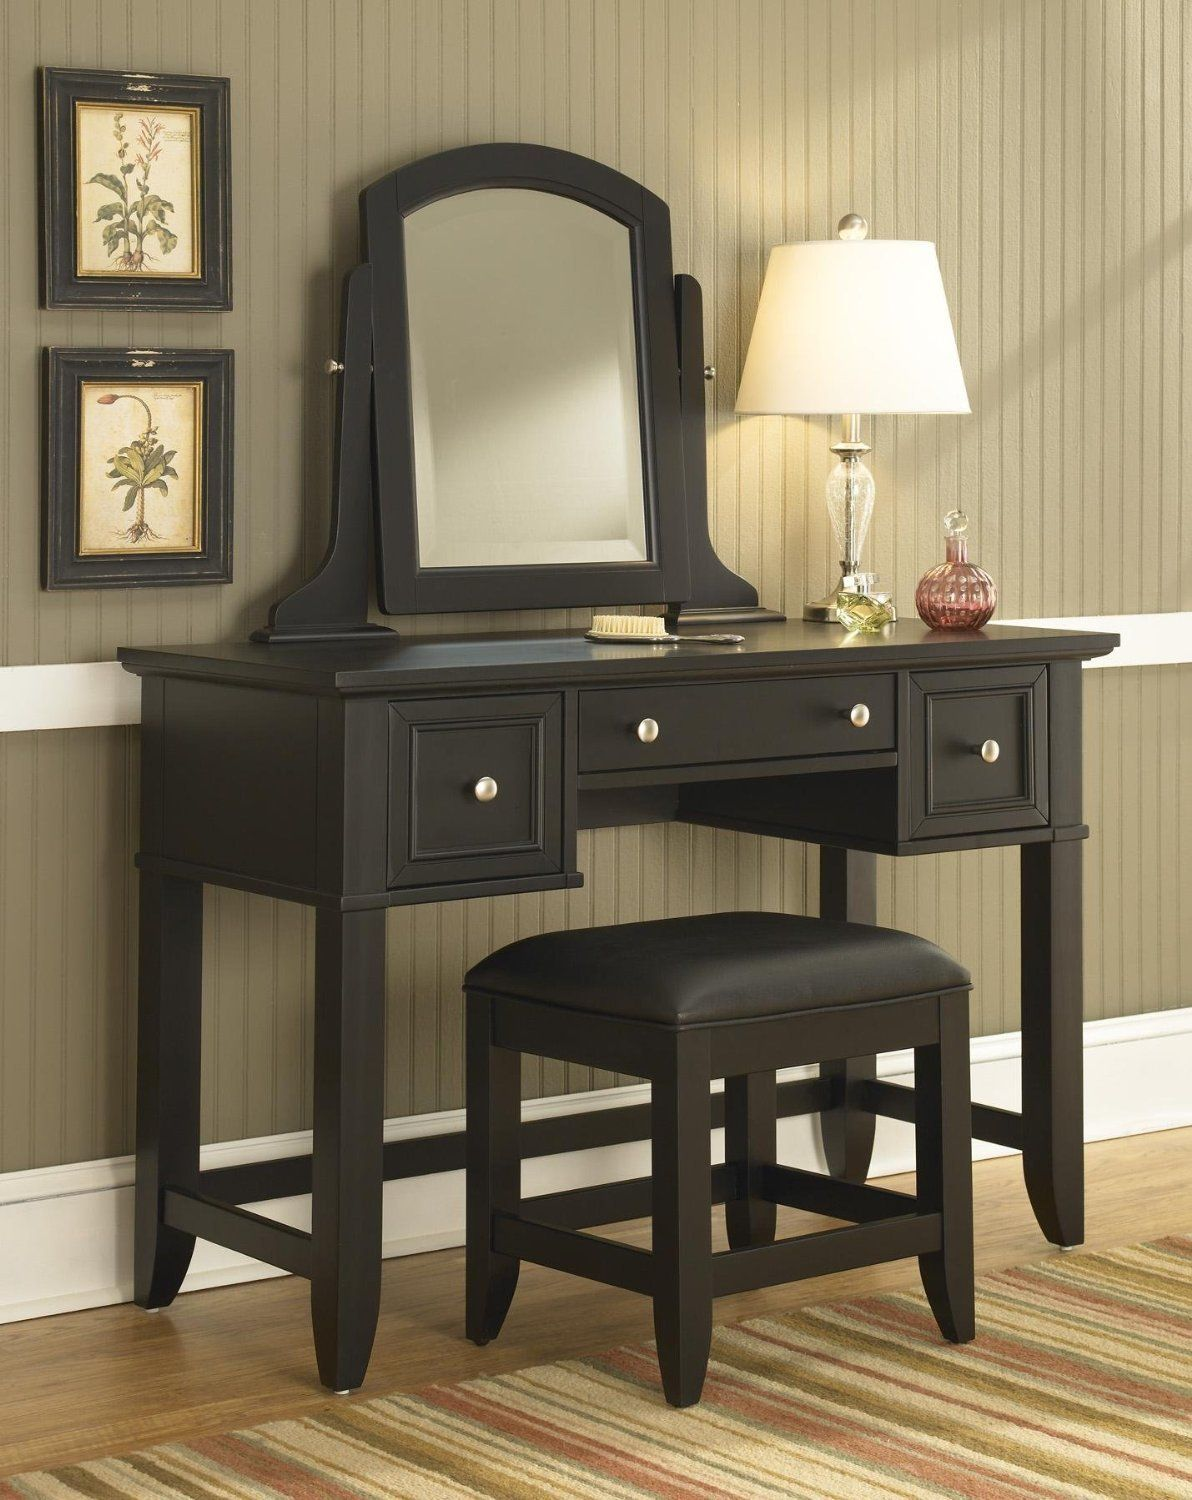 Mirrored Bedroom Bench Vanity Table And Bench Set Bedroom Furniture Black Mirror Makeup